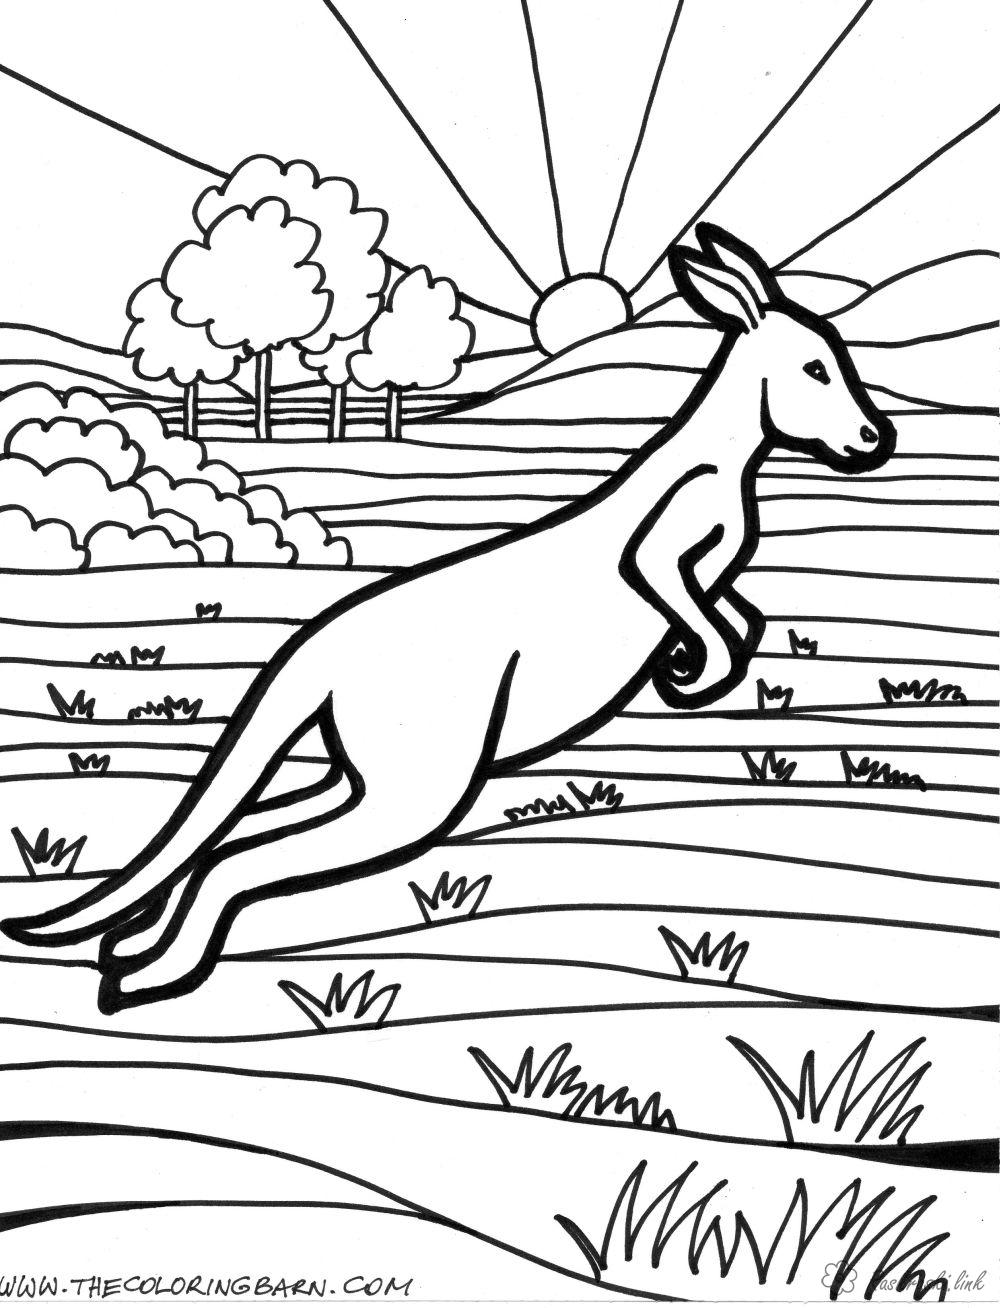 Coloring Australia coloring pages books for children, animals, Australia, kangaroo